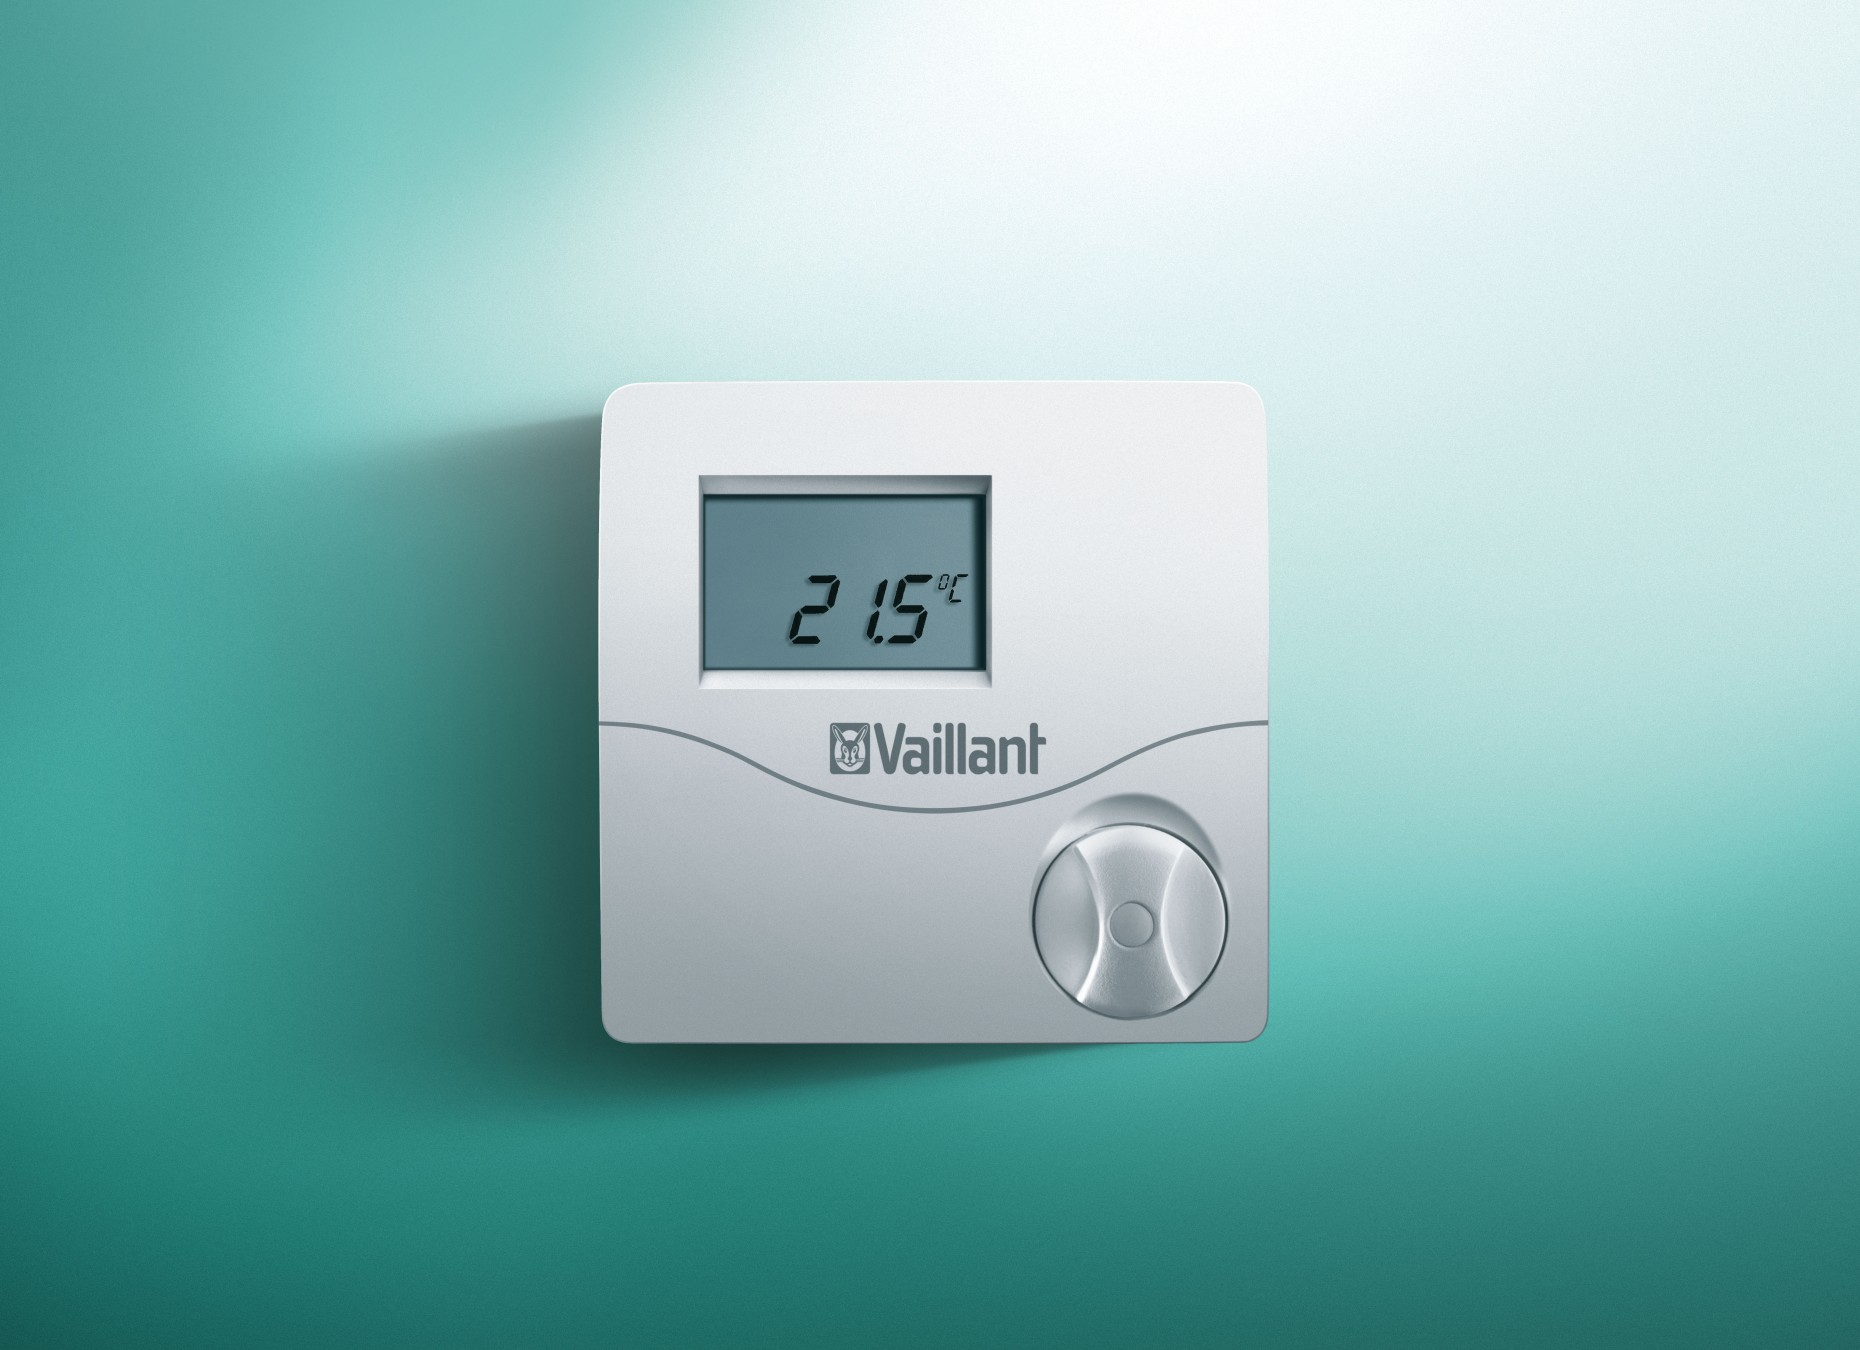 vrt 50 digital room thermostat vaillant uk. Black Bedroom Furniture Sets. Home Design Ideas